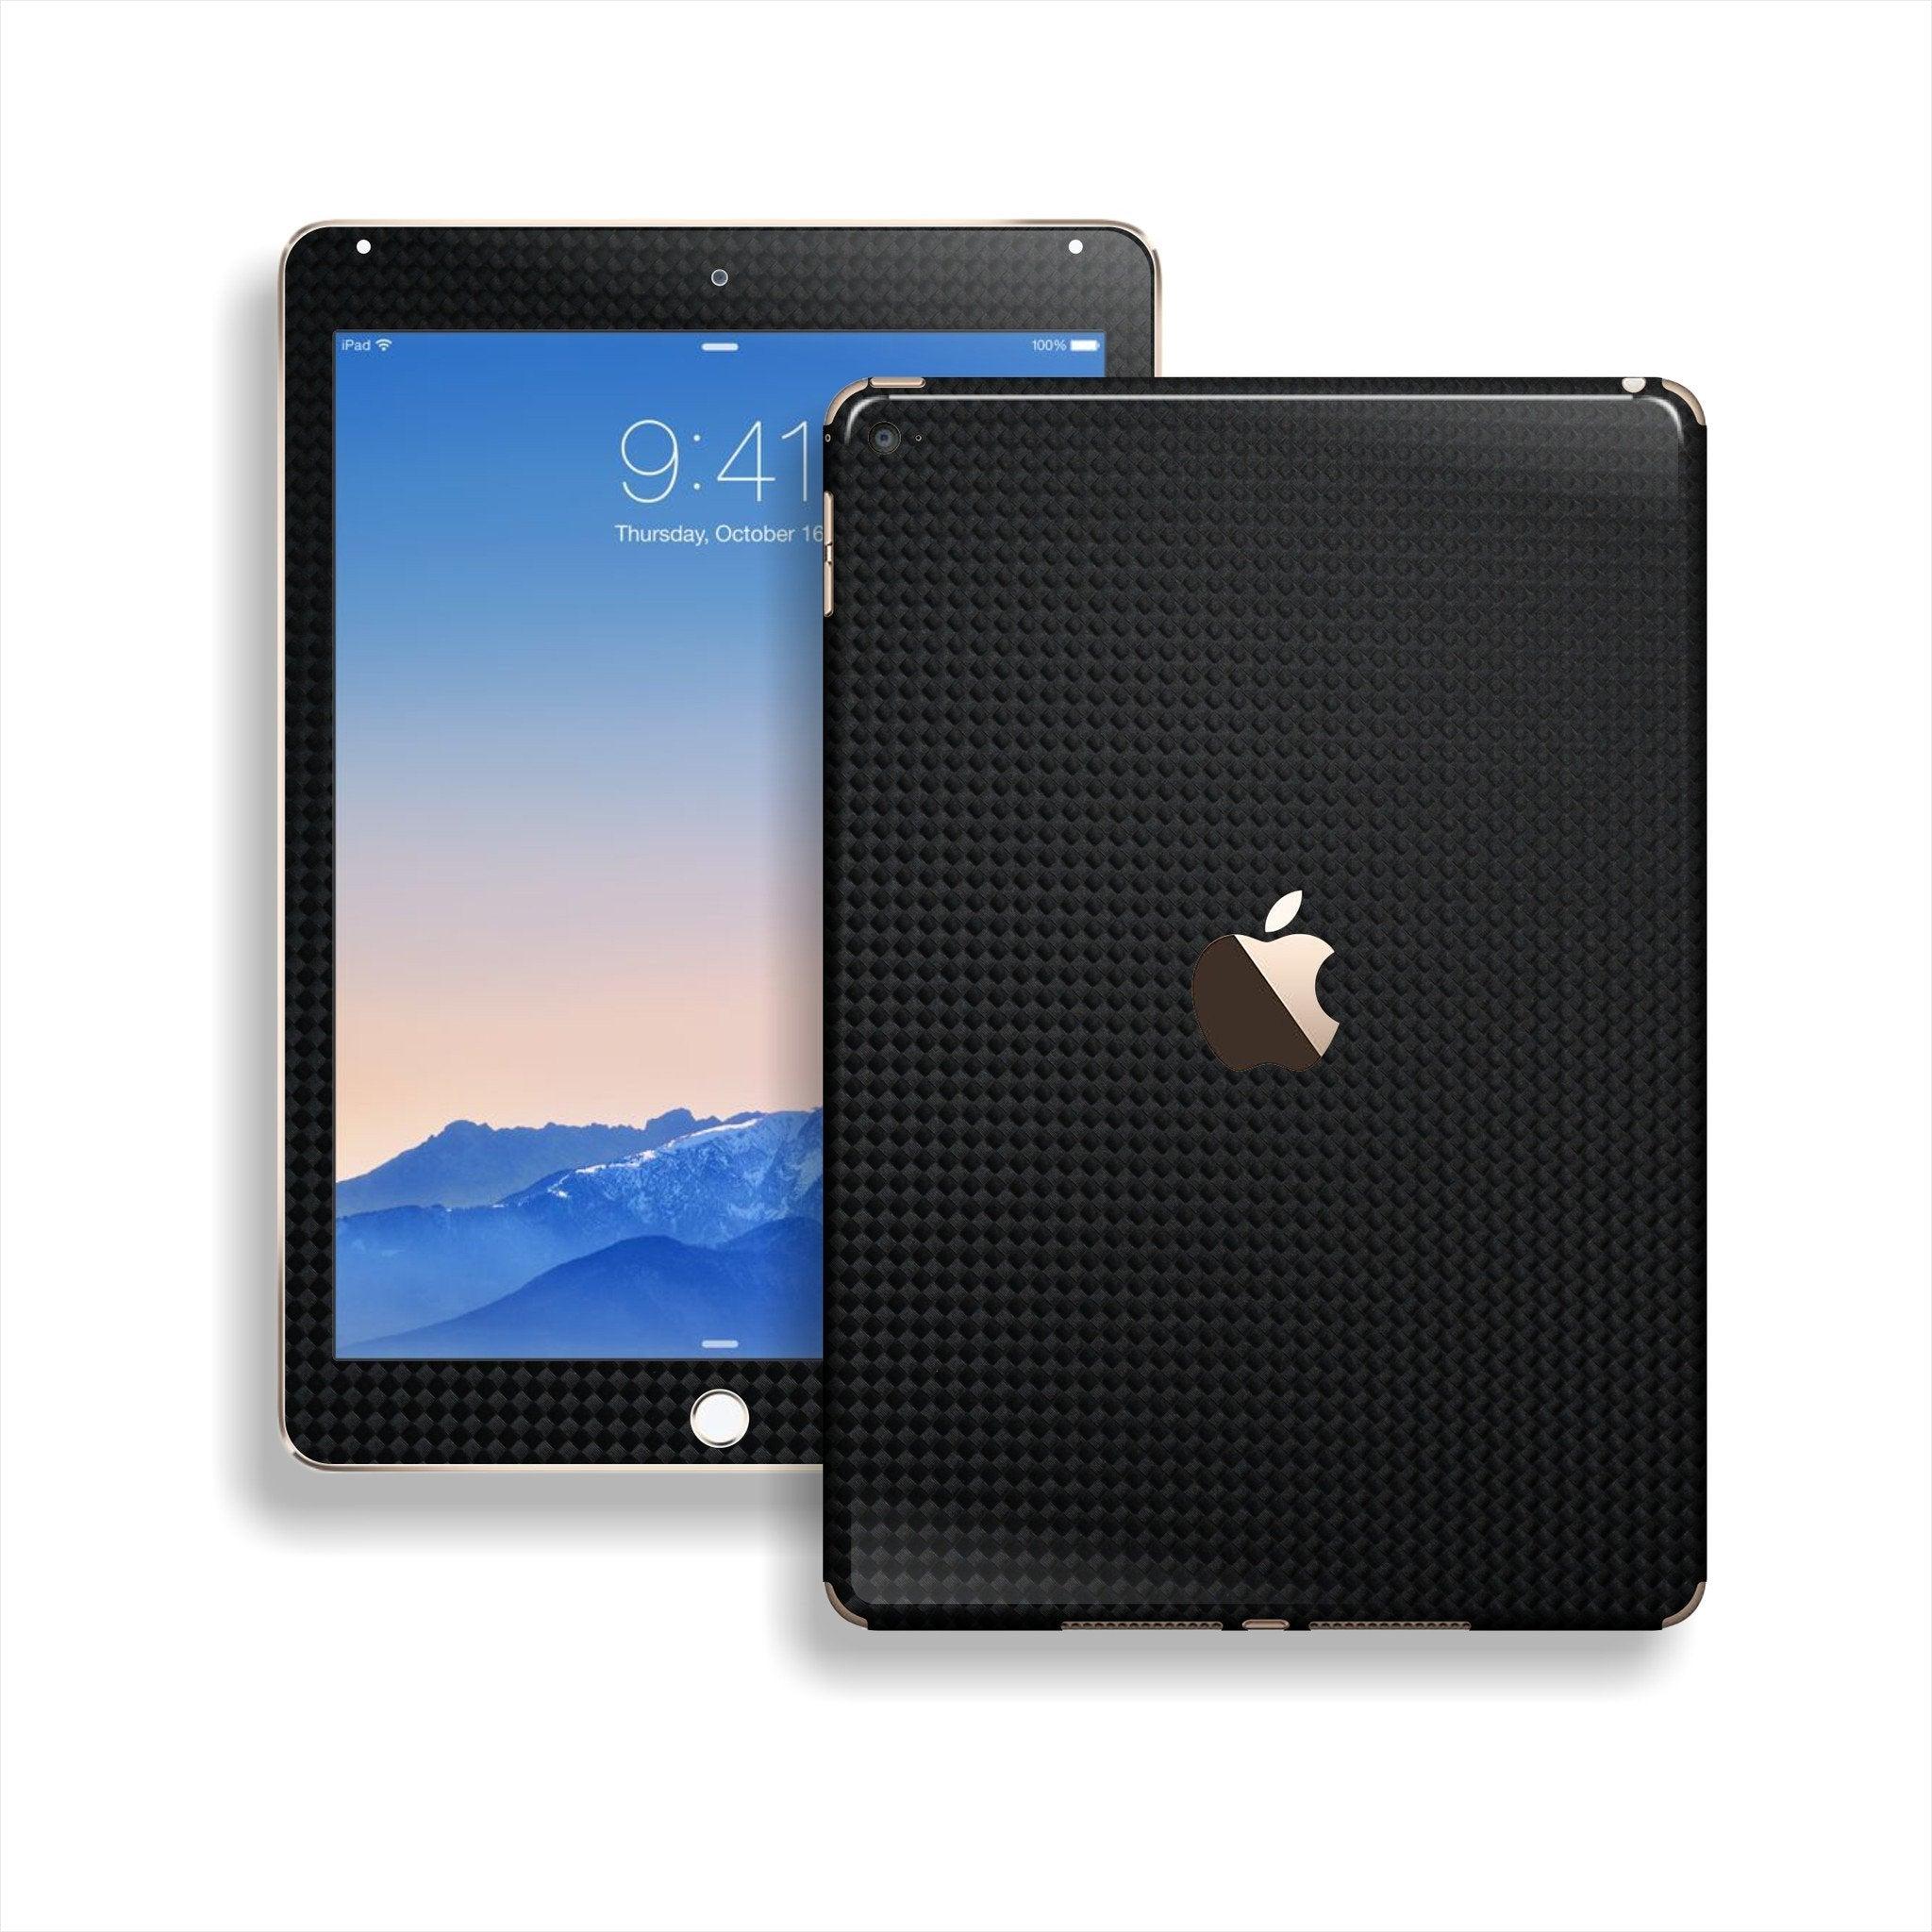 iPad Air 2 Square Black CARBON Fibre Fiber Skin Wrap Sticker Decal Cover Protector by EasySkinz